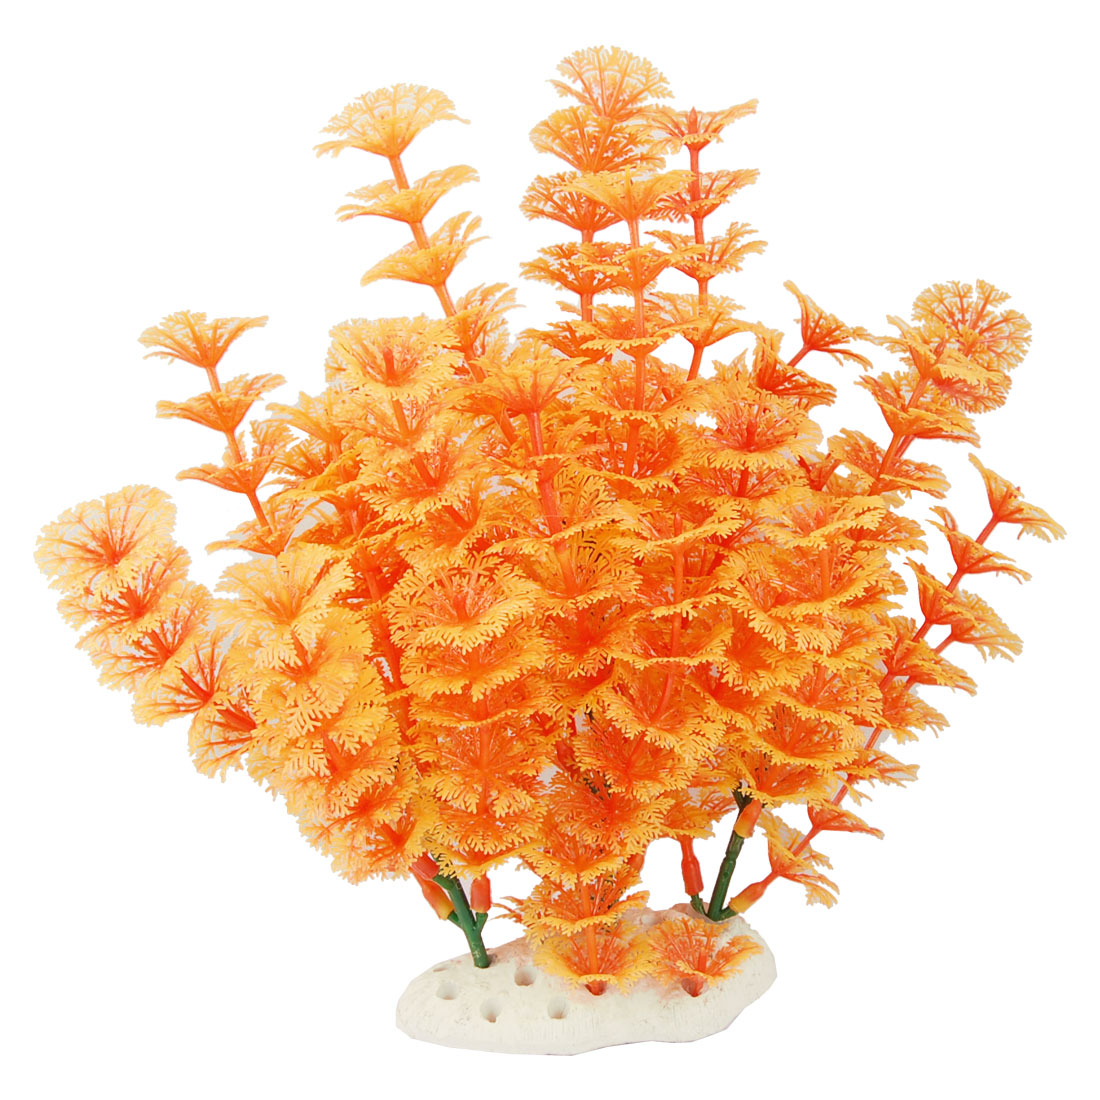 "9.4"" Orange Plastic Artificial Aquatic Plant Decor for Aquarium Fishtank"